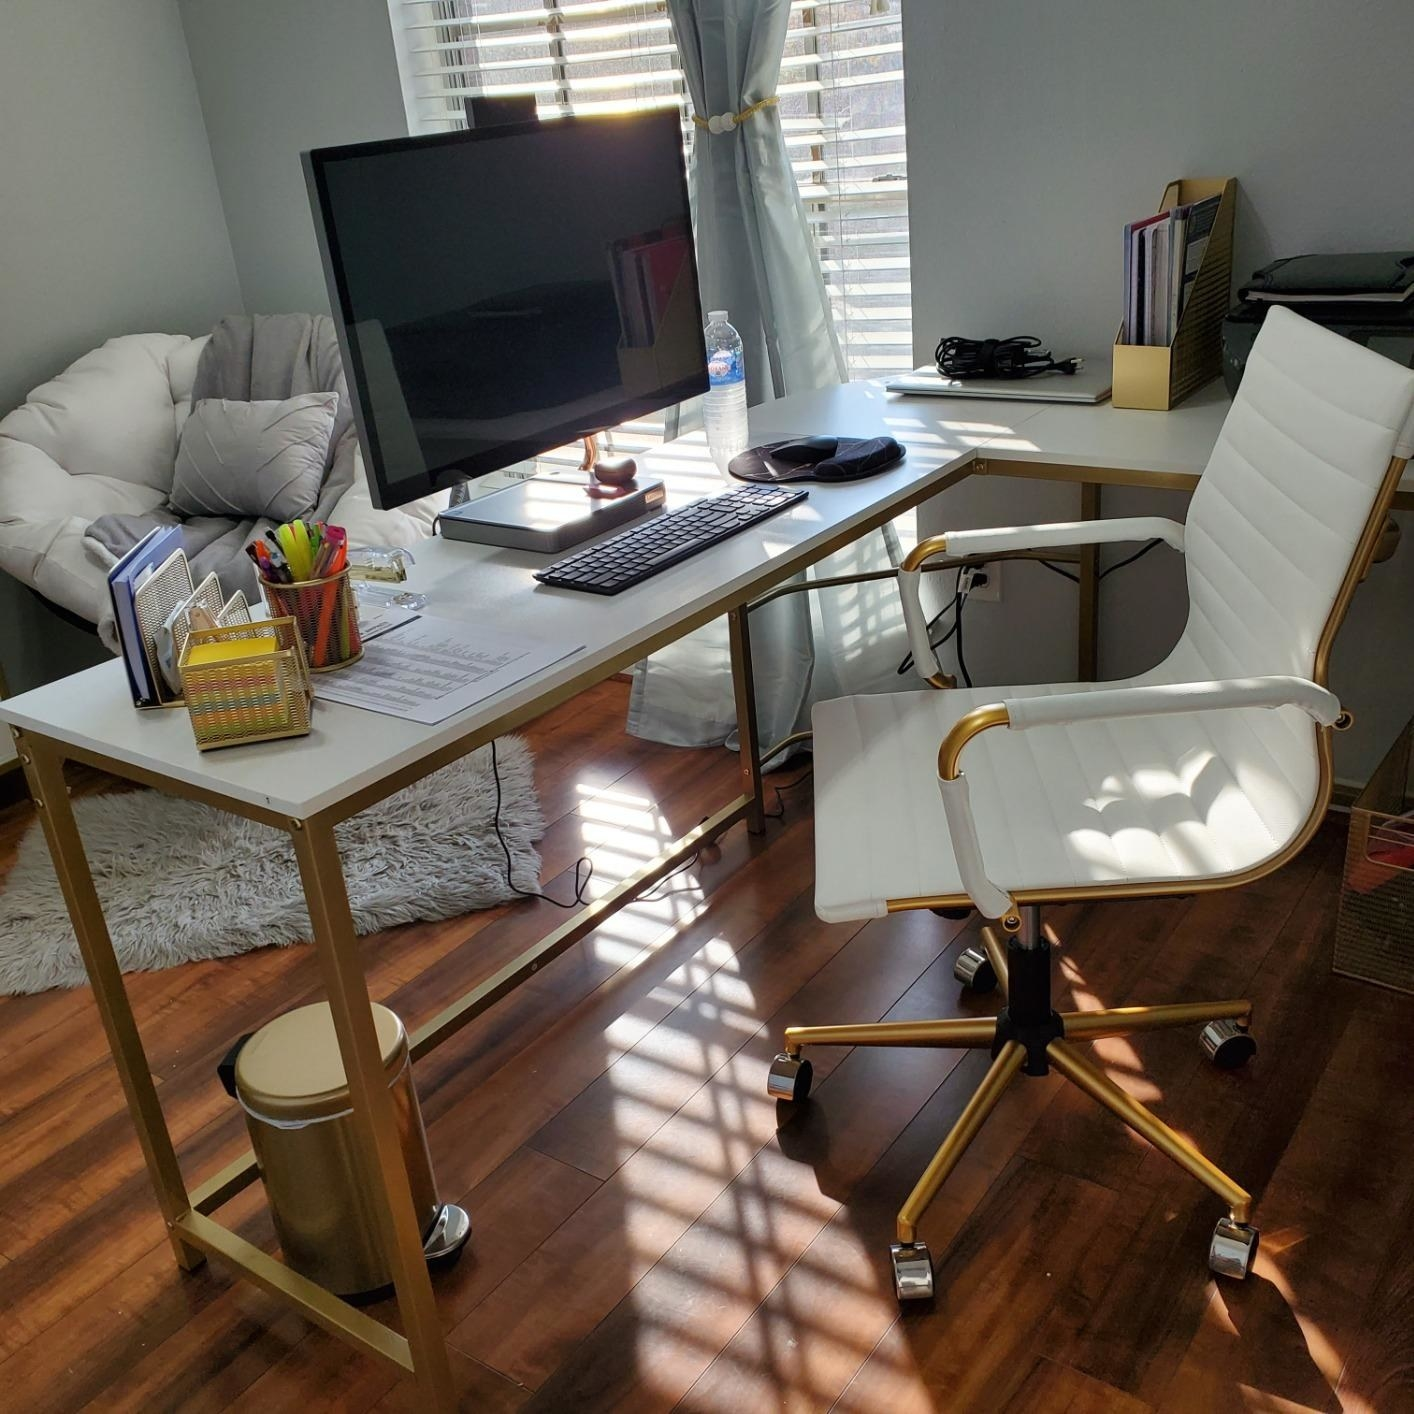 The white and gold chair in an office